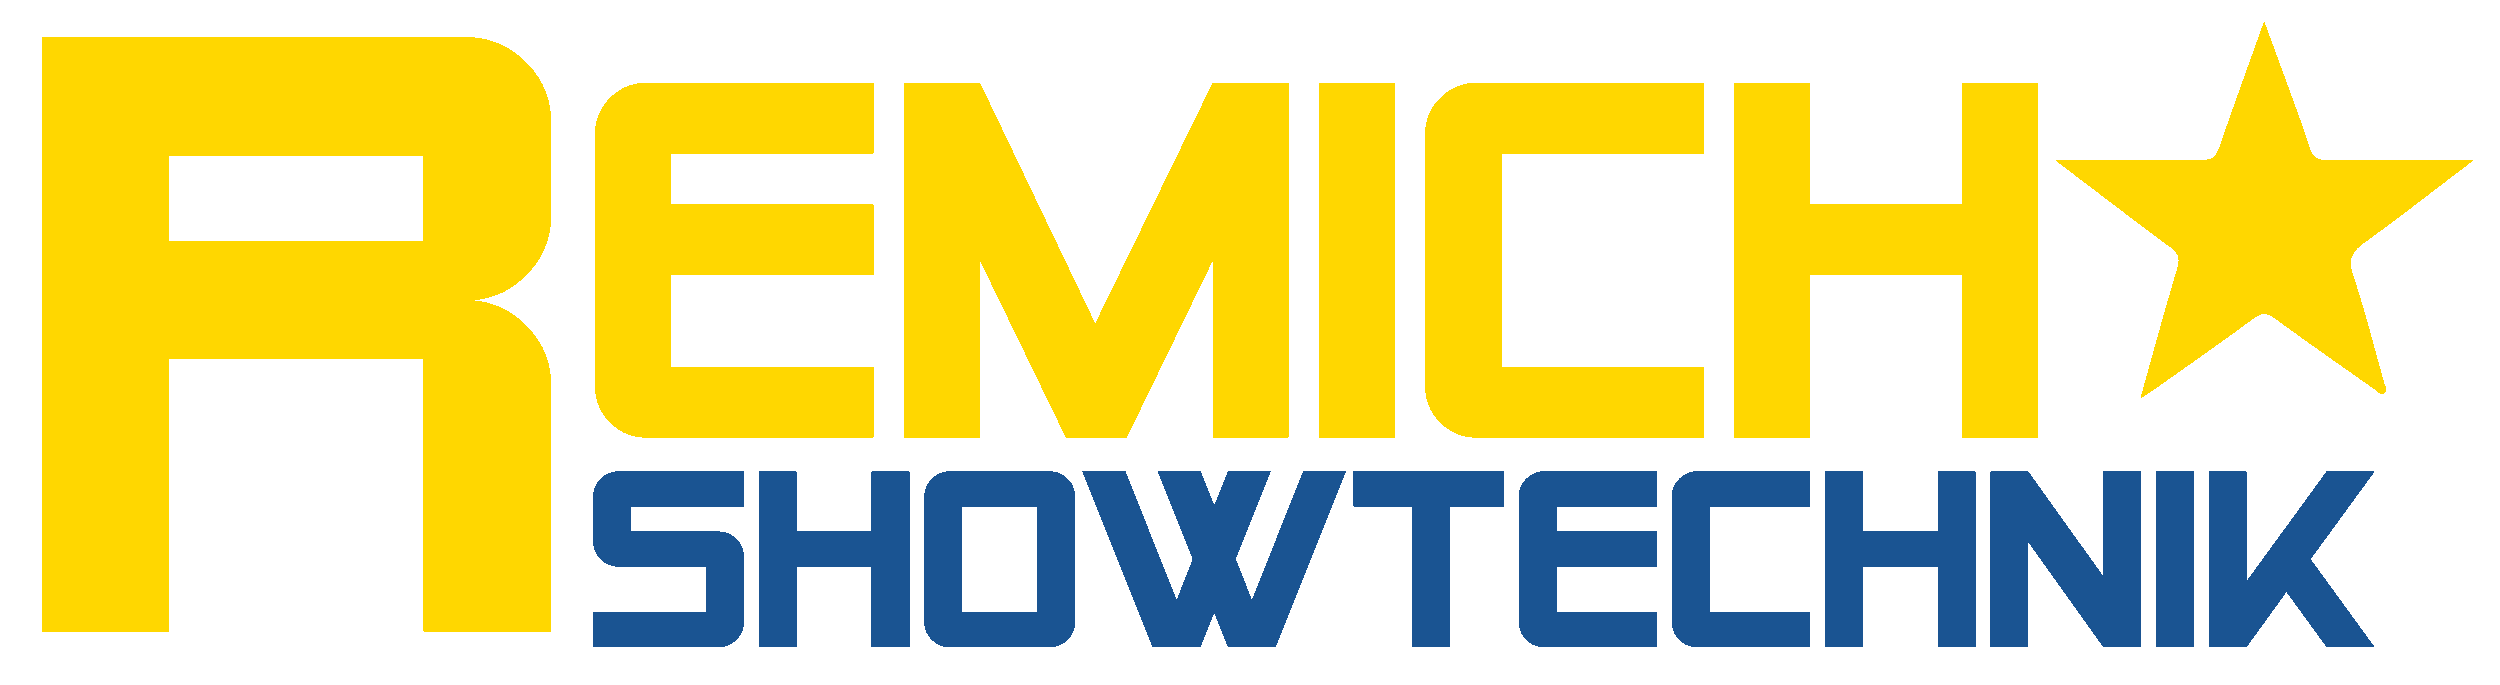 Remich Showtechnik Logo